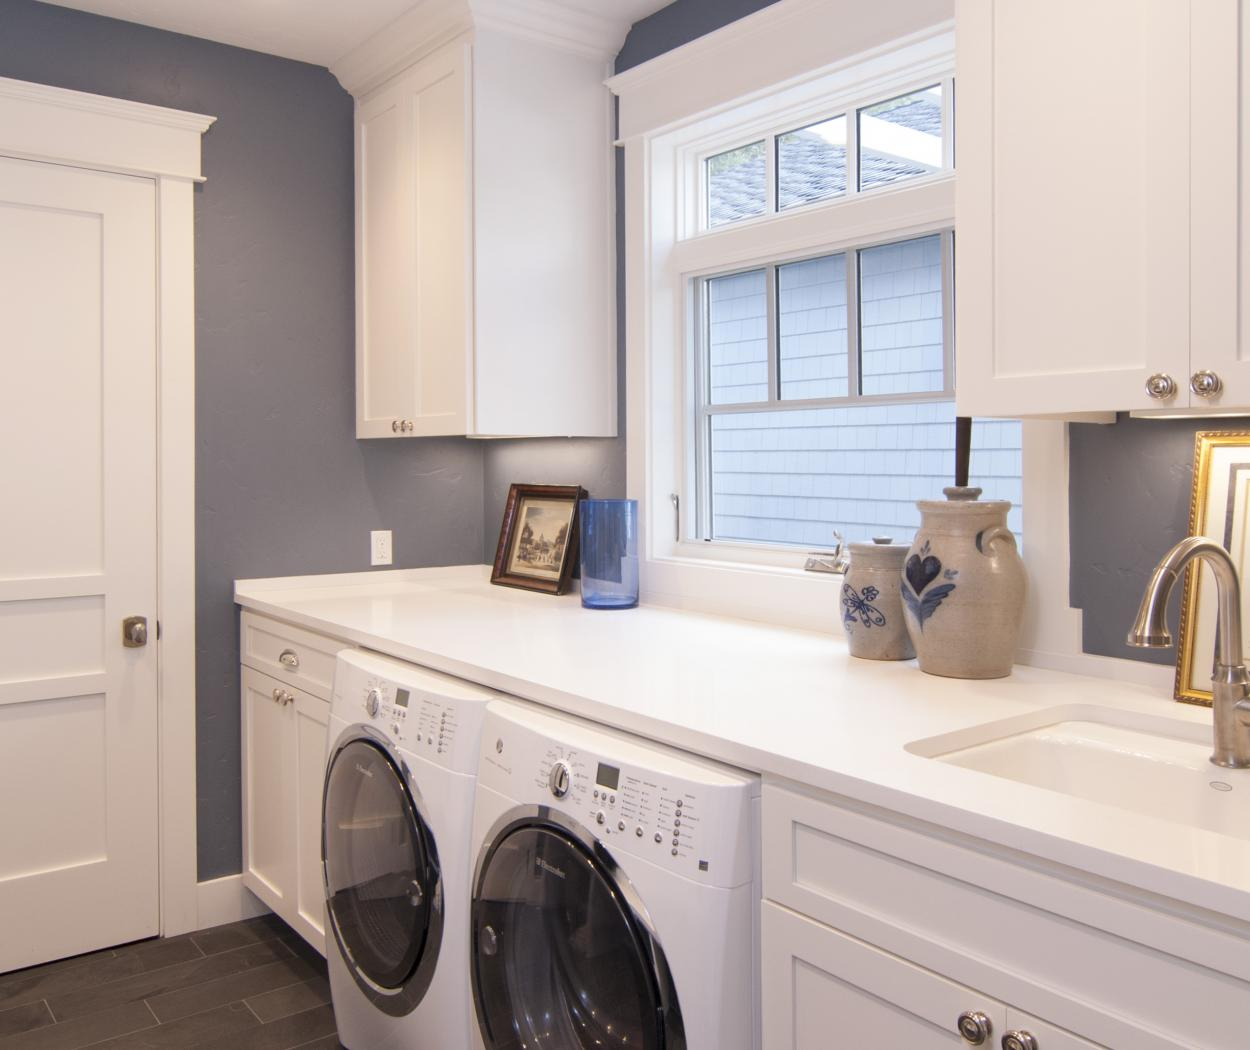 White Transitional Laundry Room with Uppers, a White Counter Top and Electrolux Washer - Dryer